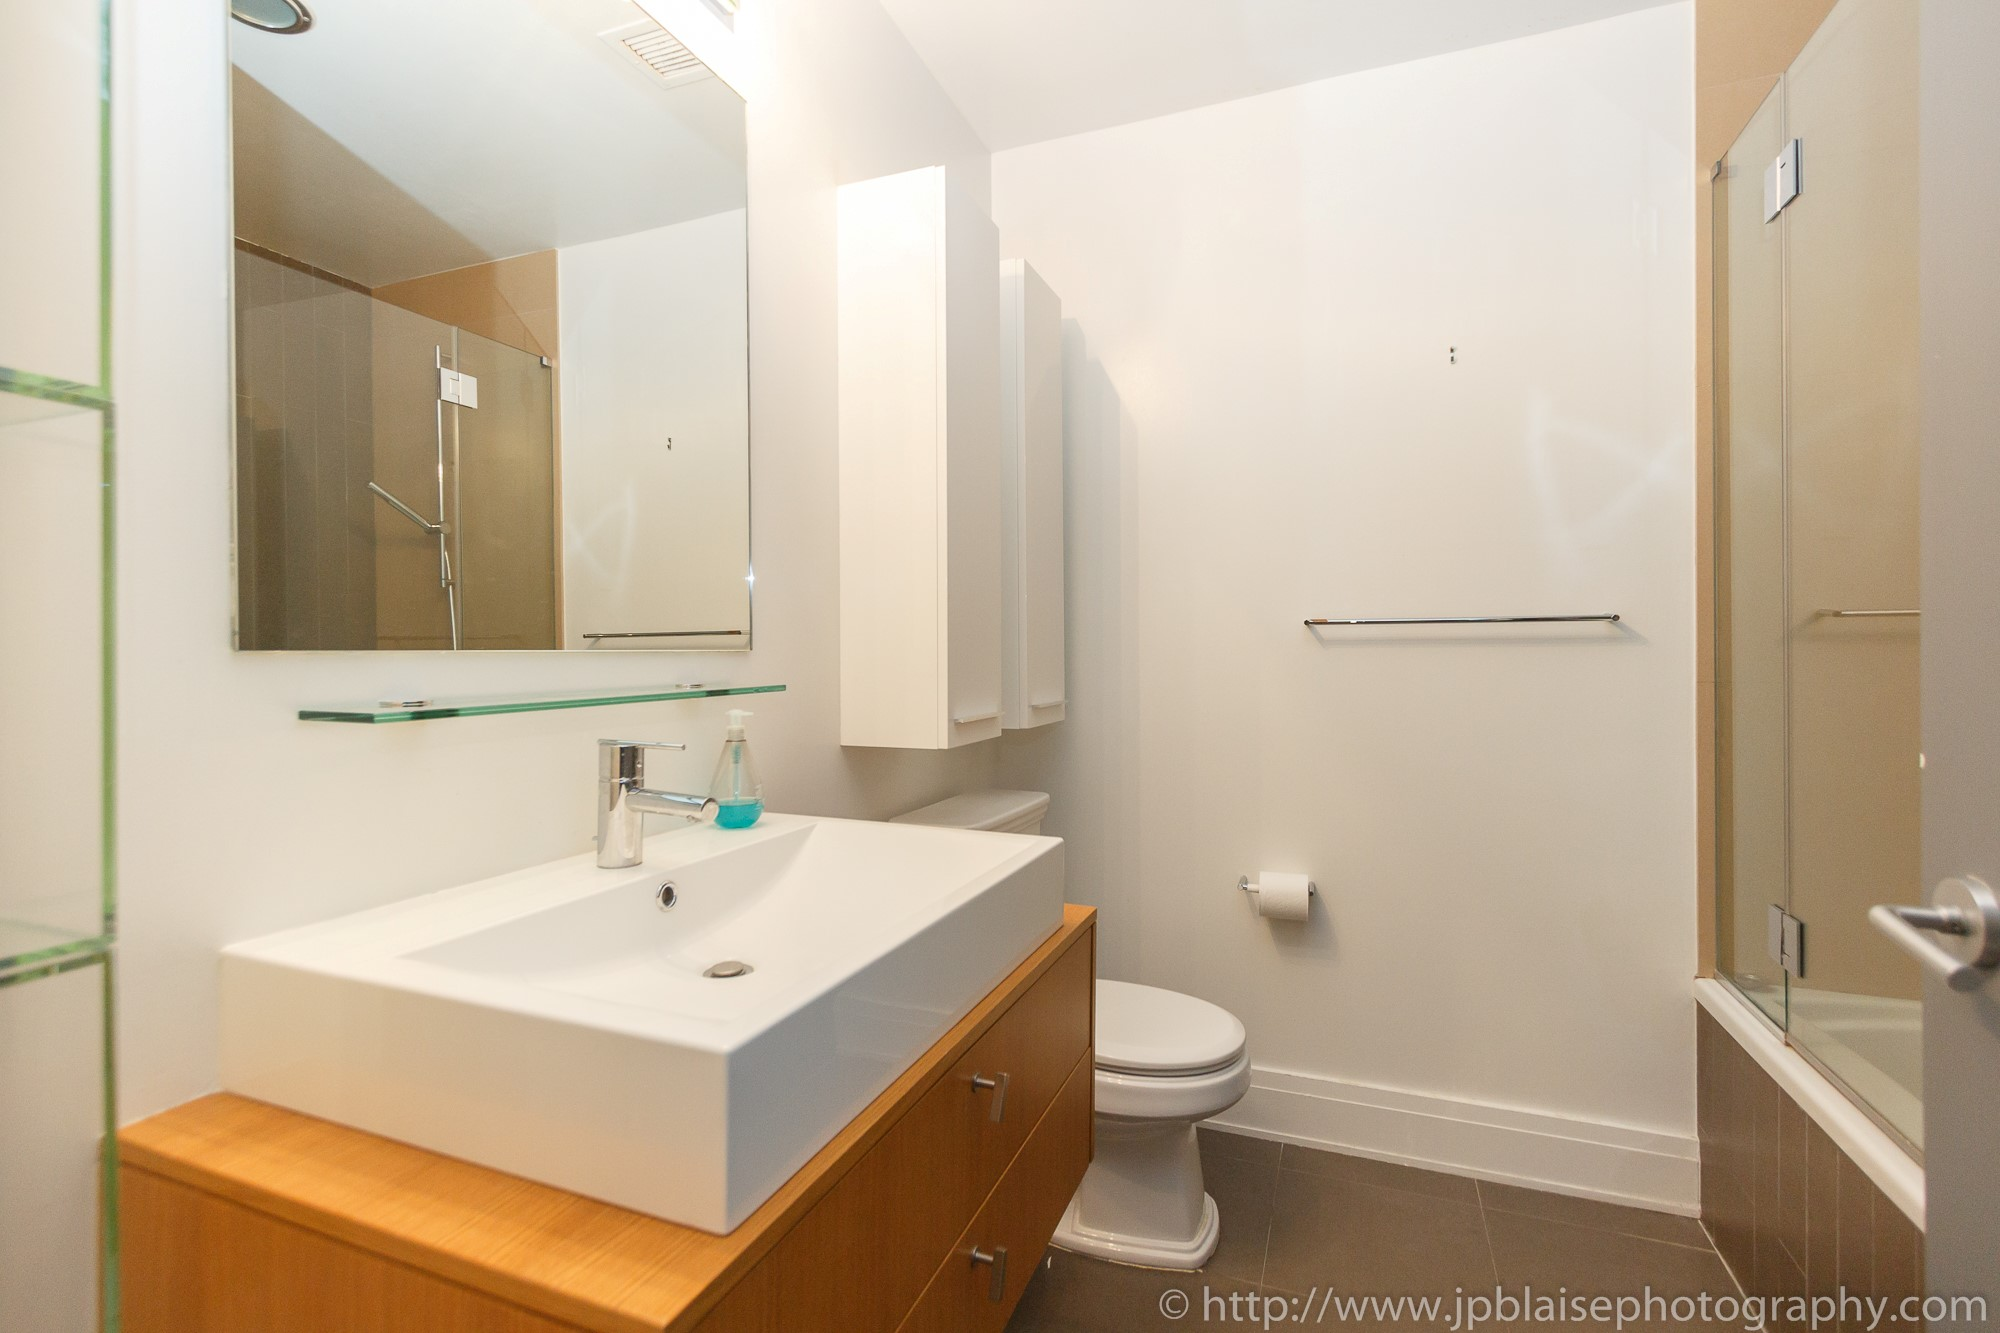 NYC apartment photographer work one bedroom condo in chelsea manhattan bathtub